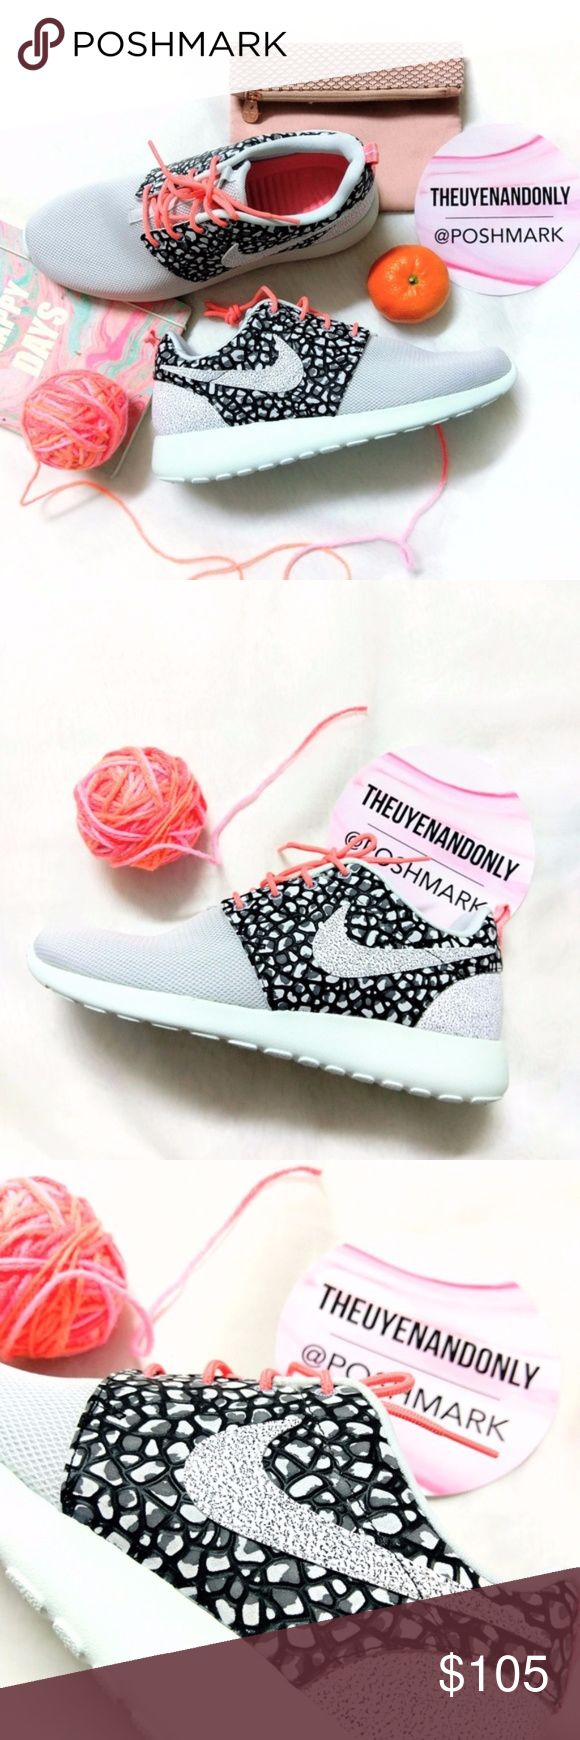 💠NEW💠 Nike Roshe One Premium Print Women 💠NEW WITHOUT BOX 💠COLOR: Pure Platinum/Black/Fiberglass/White 💠100% Authentic  💠NO TRADE  💠Accept Reasonable Offer ONLY 💠SHOES ONLY. Other accessories in the cover pic are not included. Price firm during sale 💠 RUDE COMMENTS will be reported directly to Poshmark 💠Please note: Colors might appear a bit darker OR lighter due to differences in phone/computer monitor. Nike Shoes Sneakers